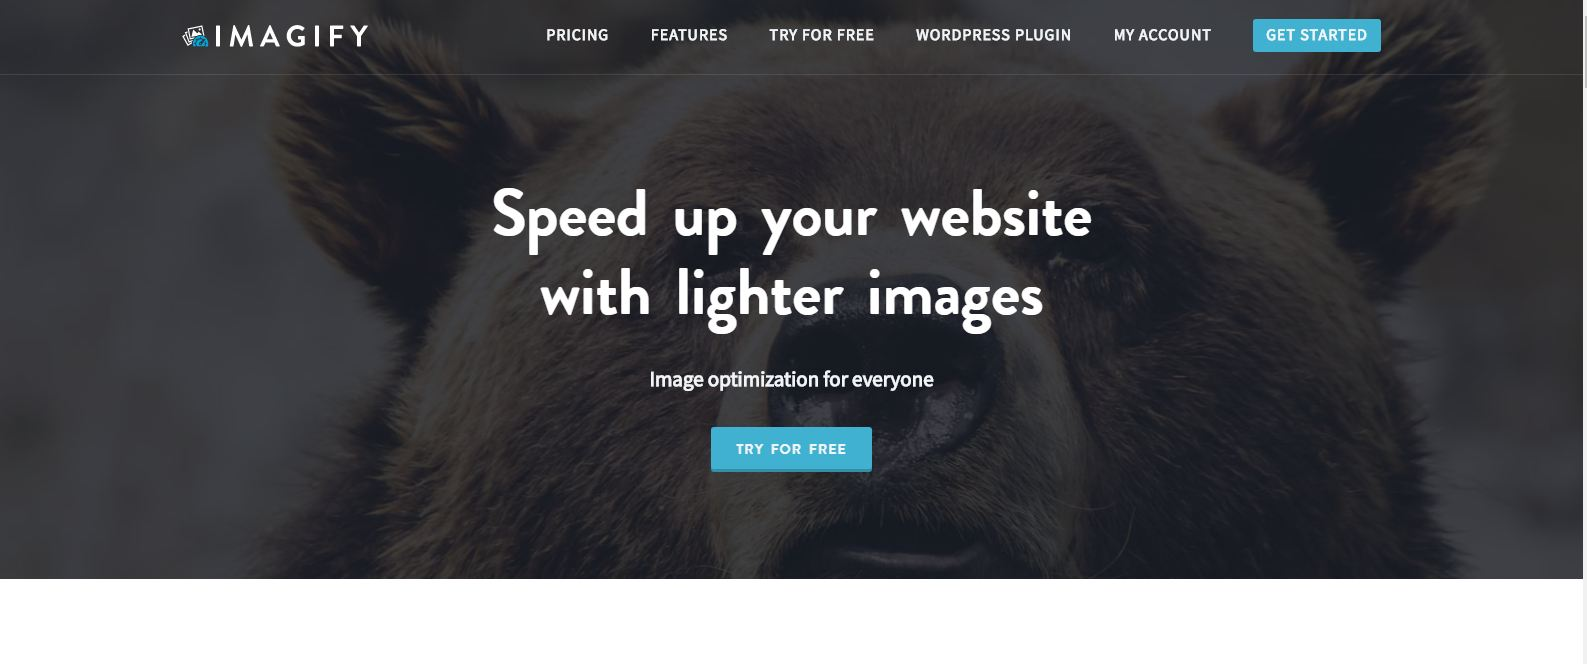 Imagify image compression tools